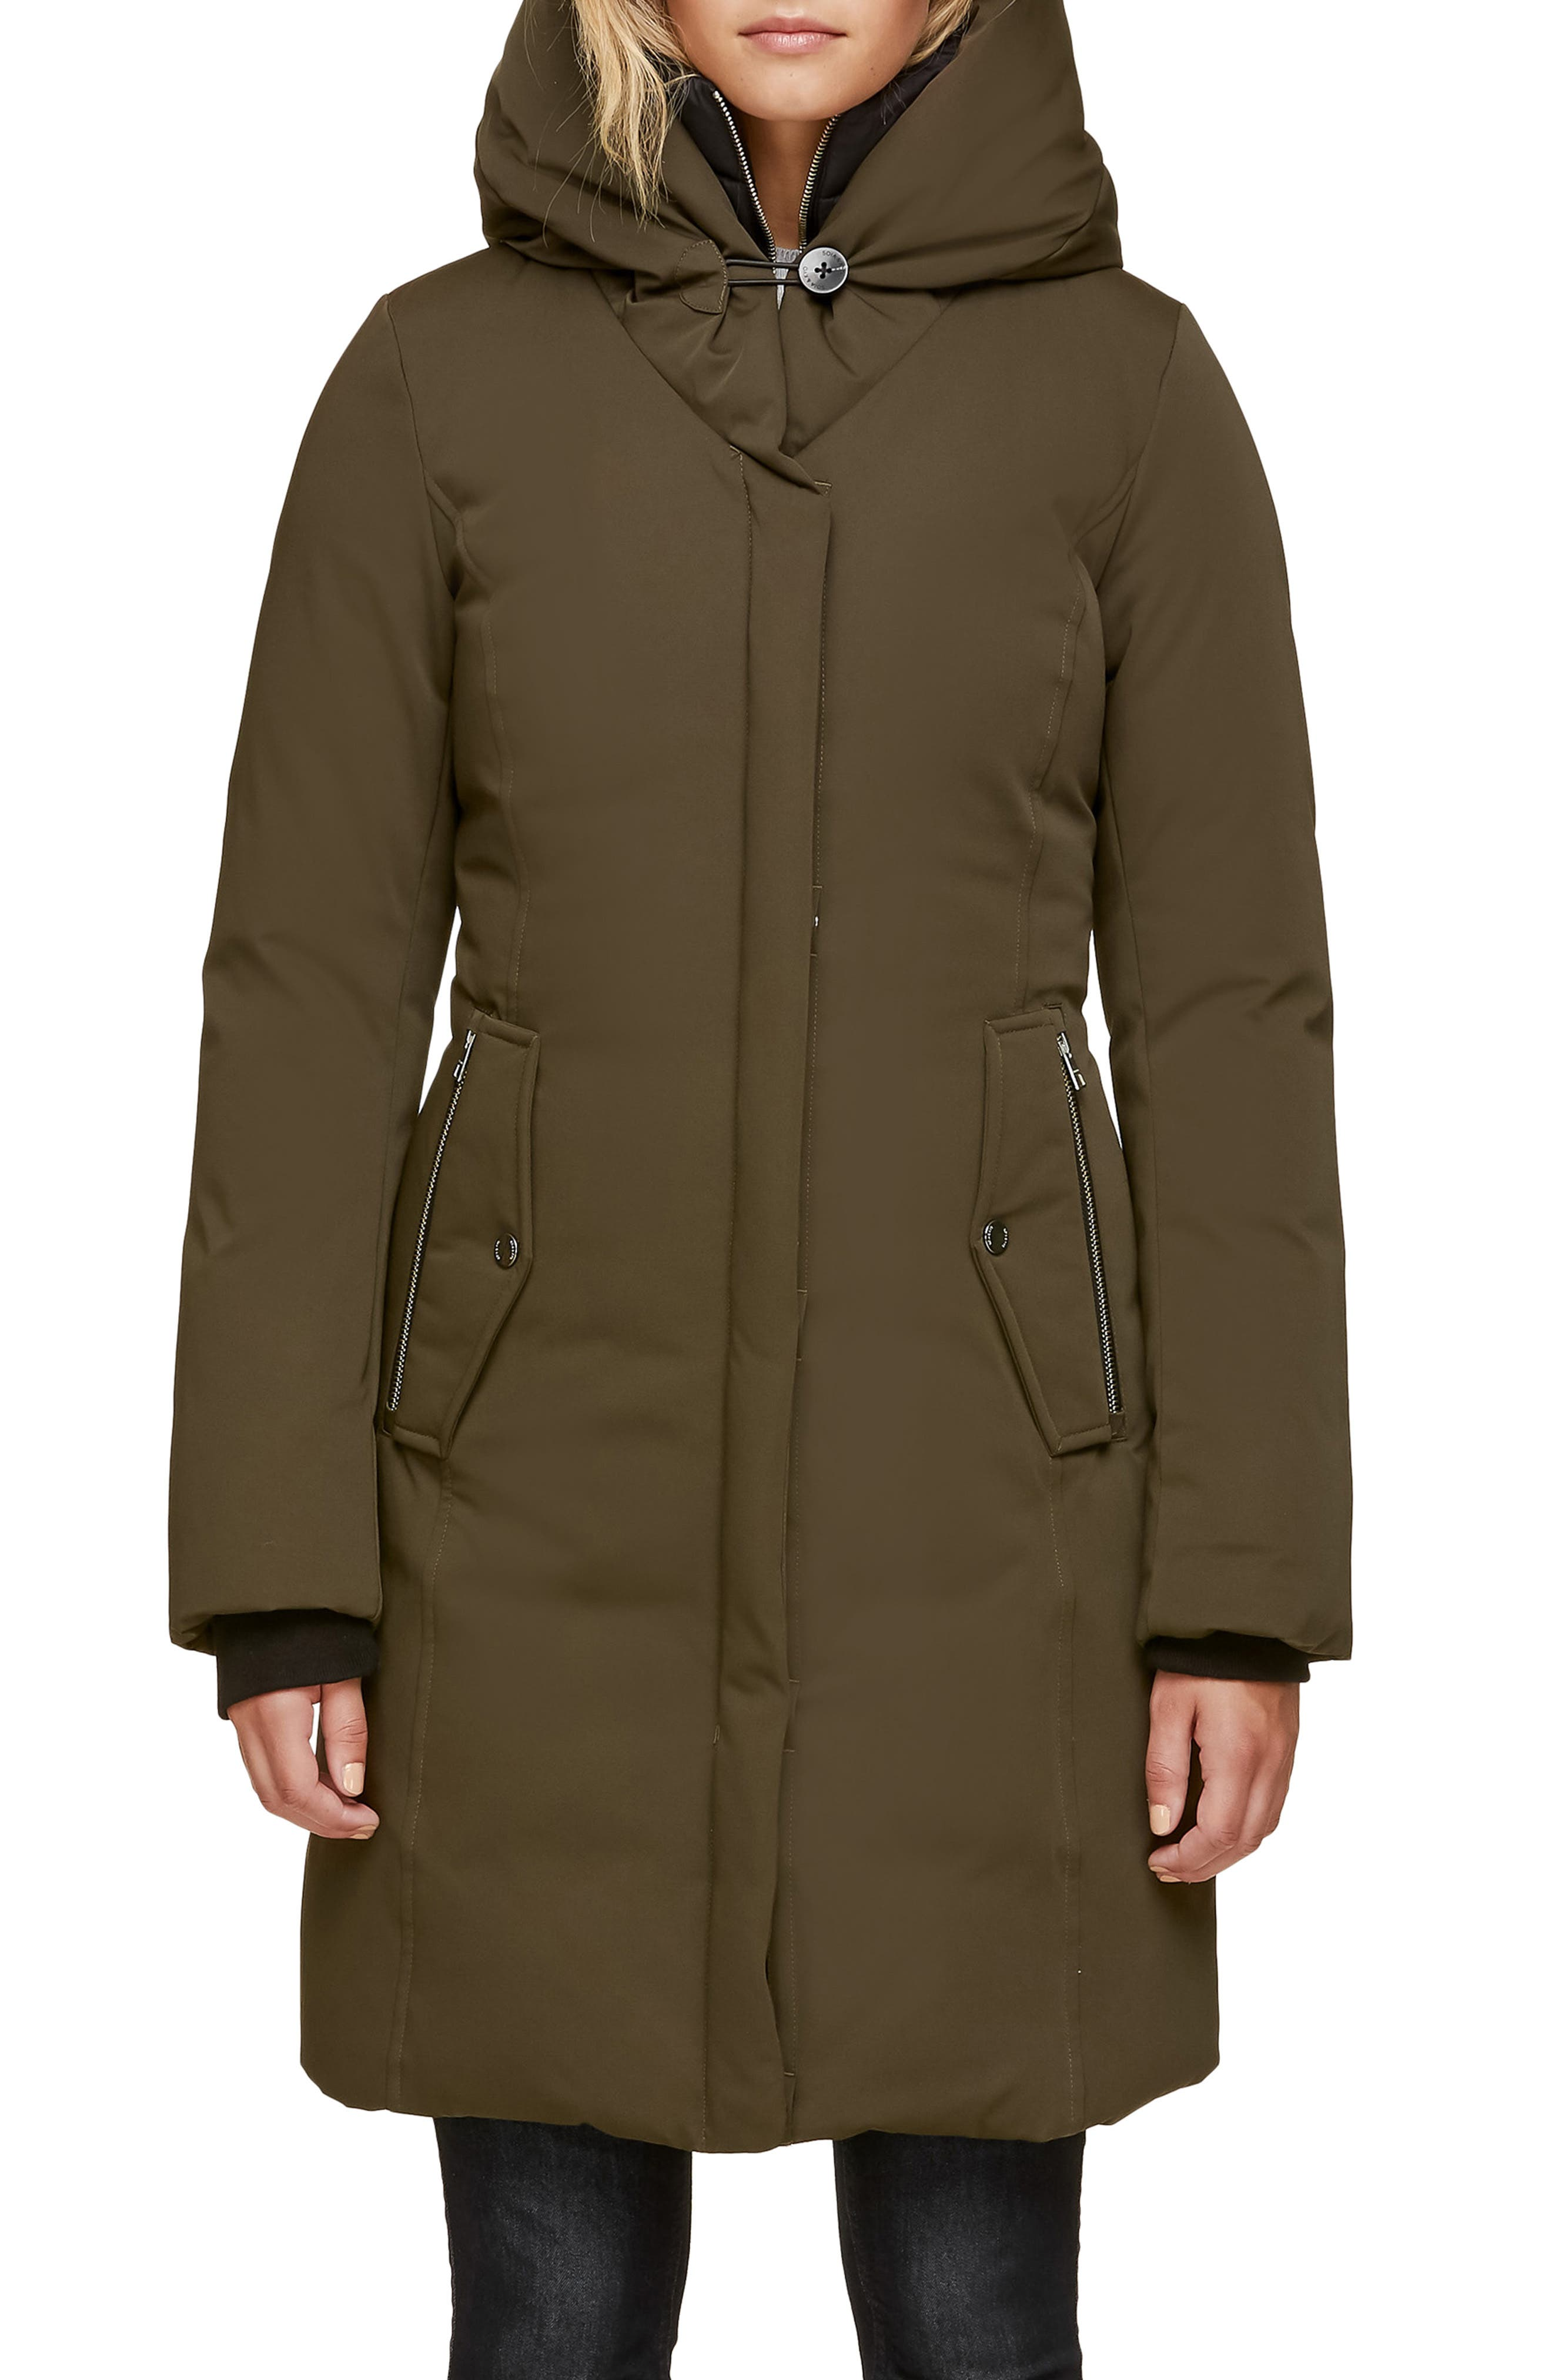 Soia & Kyo Slim Fit Hooded Down Coat, Green